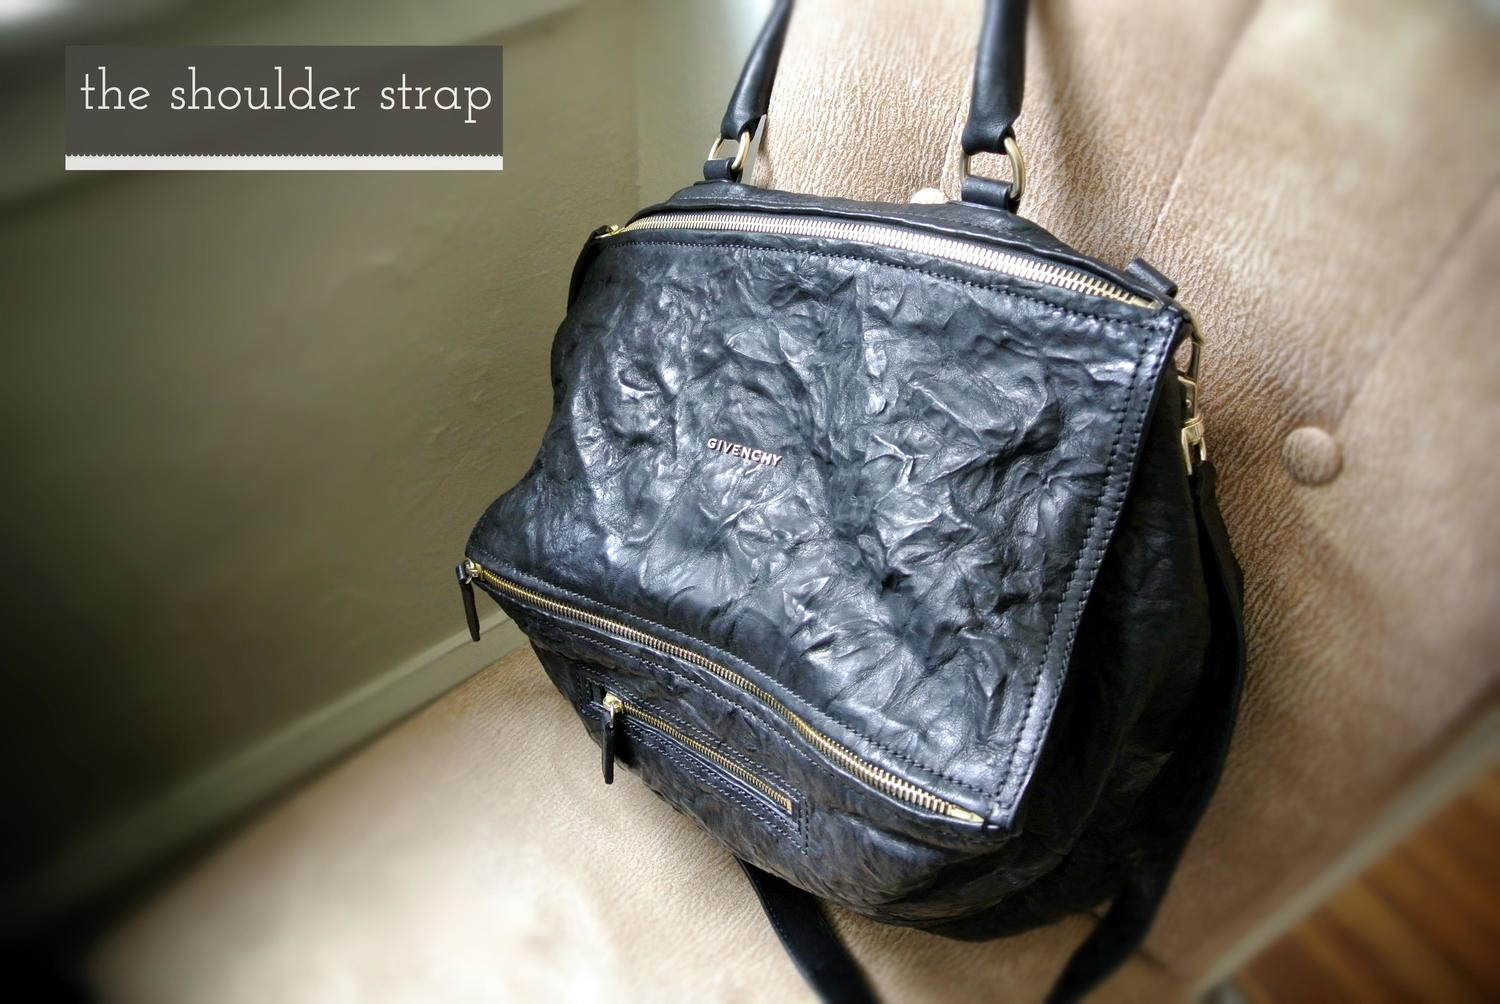 dade974df7f1 Givenchy Large Pandora Messenger in Black Pepe Leather — The ...